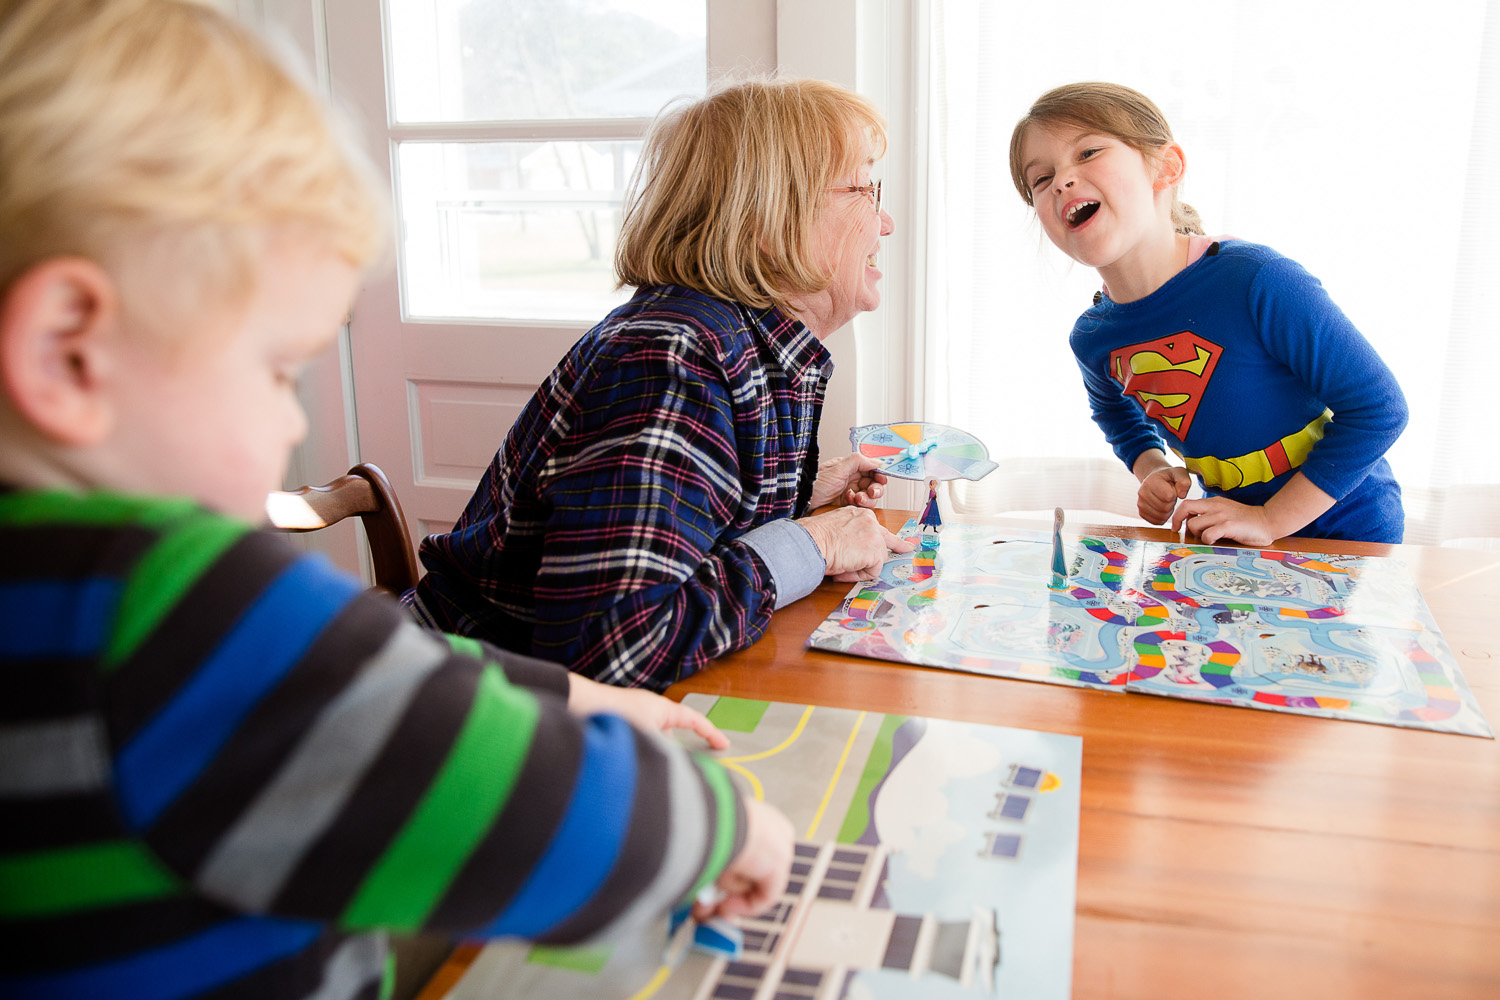 Family storytelling photography of Grandmom playing with her grandkids